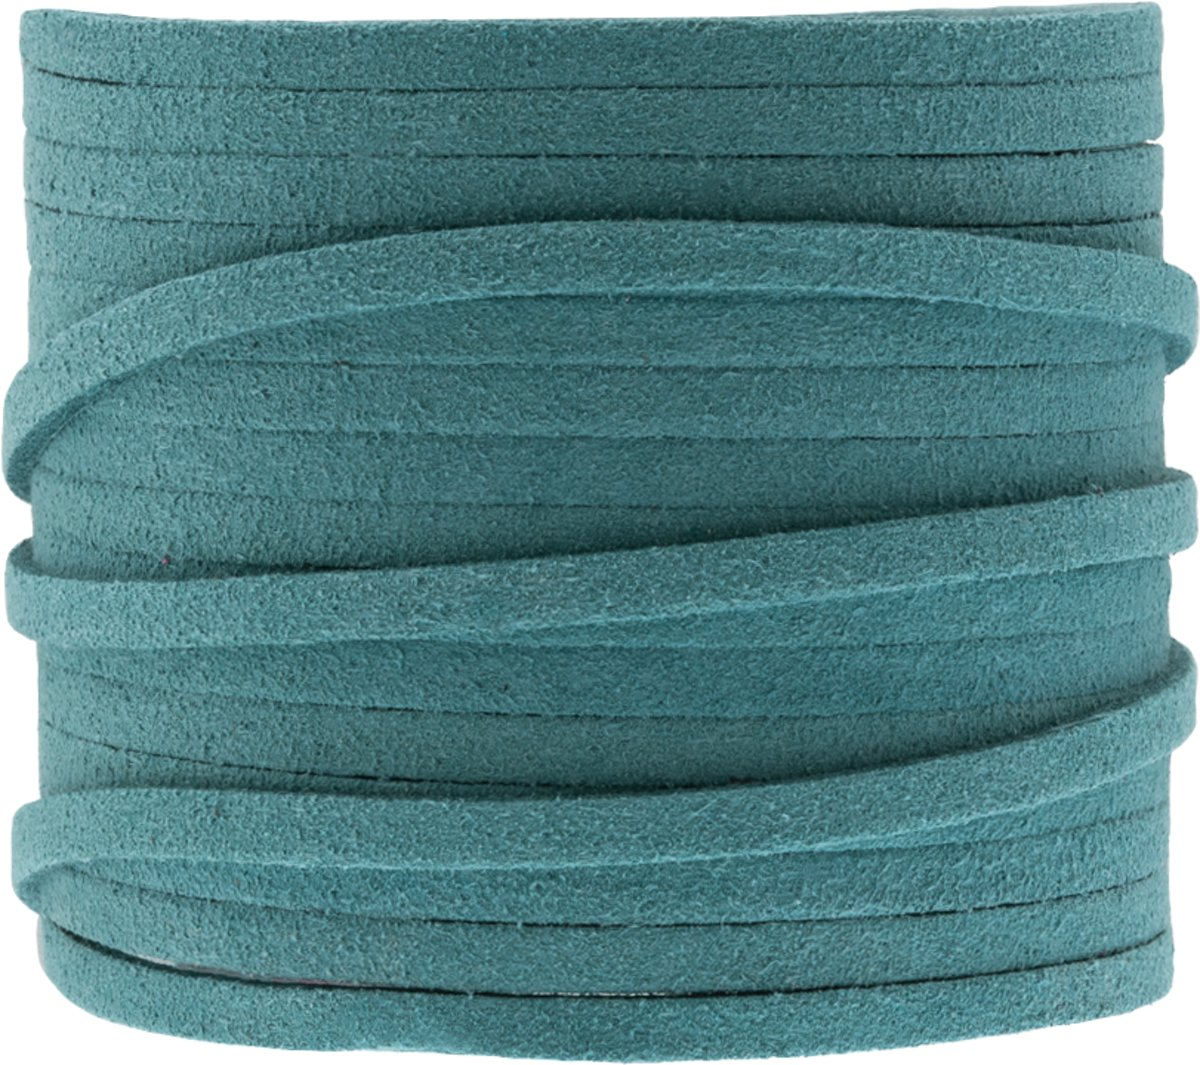 Faux Suede Veter (3 mm) Ocean Blue (5 Meter)